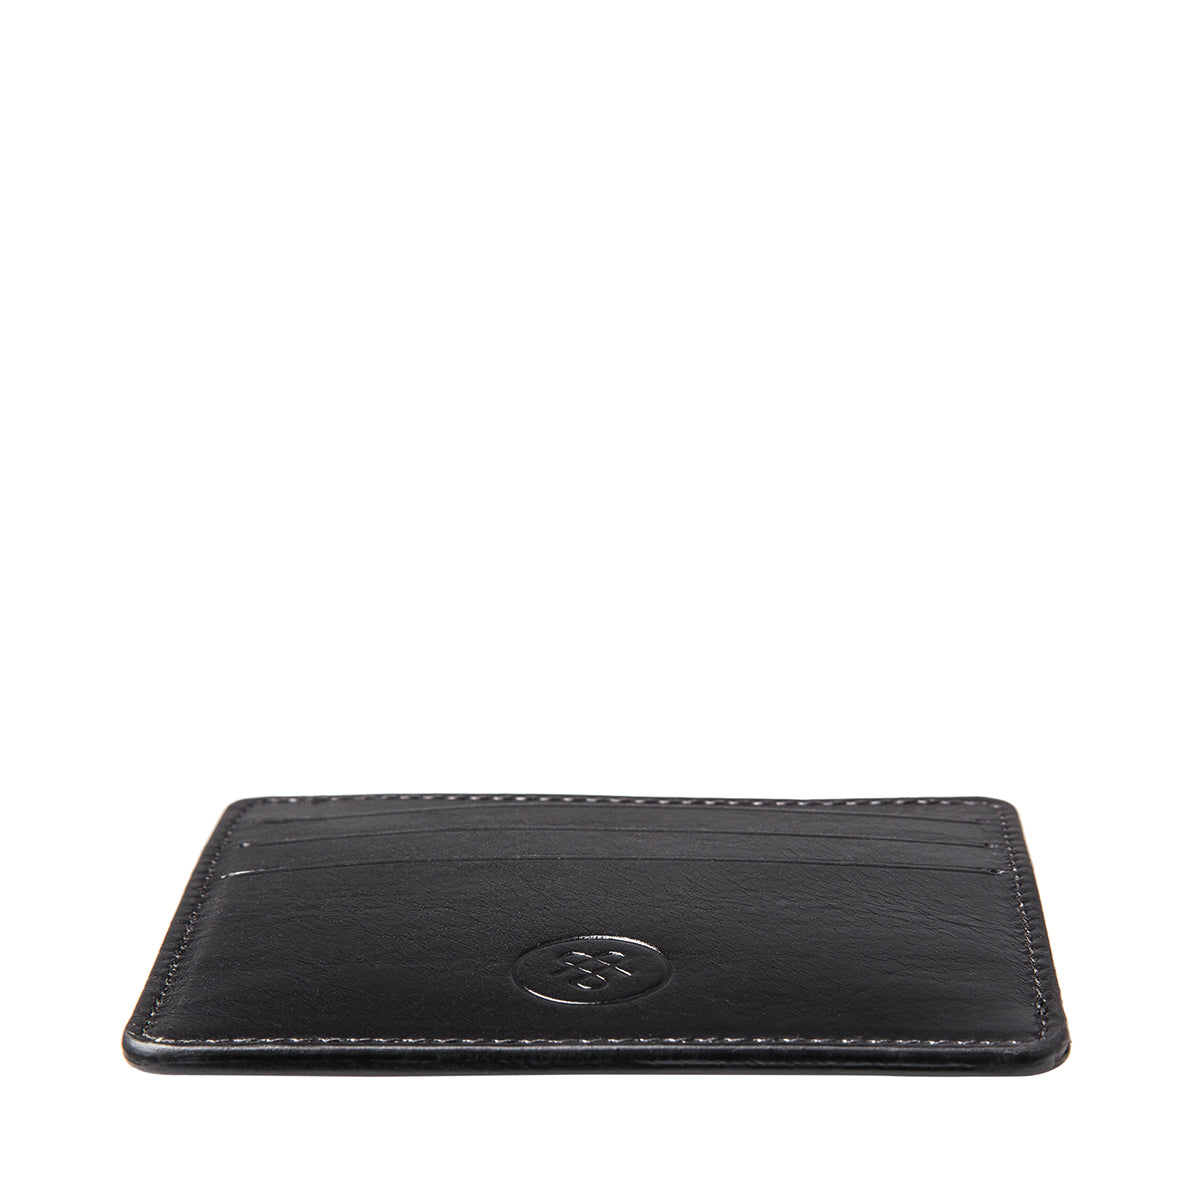 Image 5 of the 'Marco' Black Veg-Tanned Leather Wallet